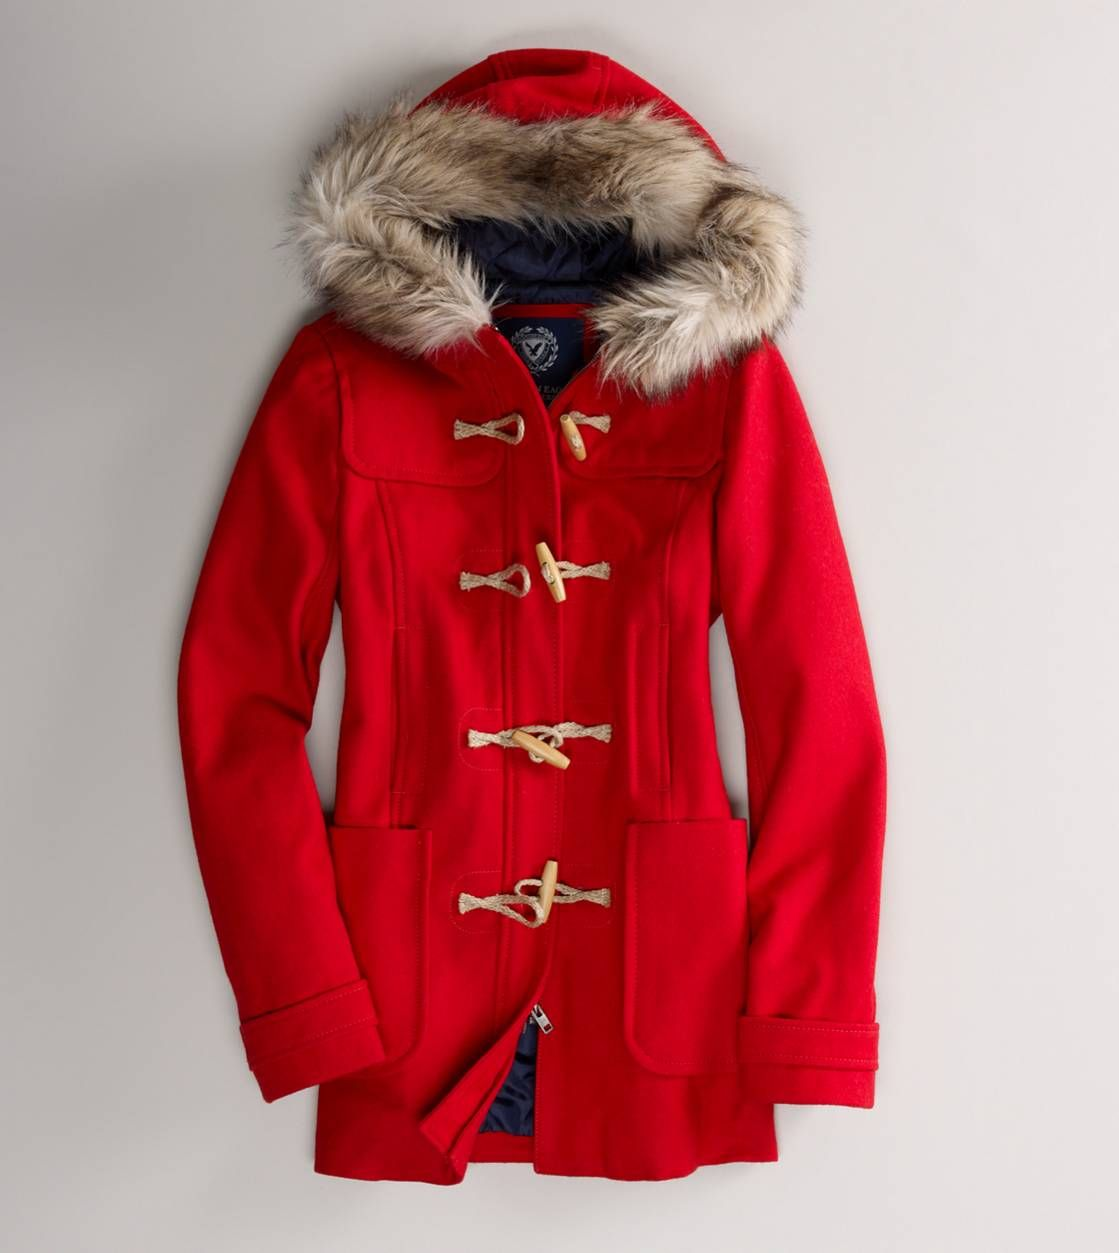 Search Results American Eagle Outfitters Red Coat Coat Long Winter Jacket [ 1253 x 1119 Pixel ]